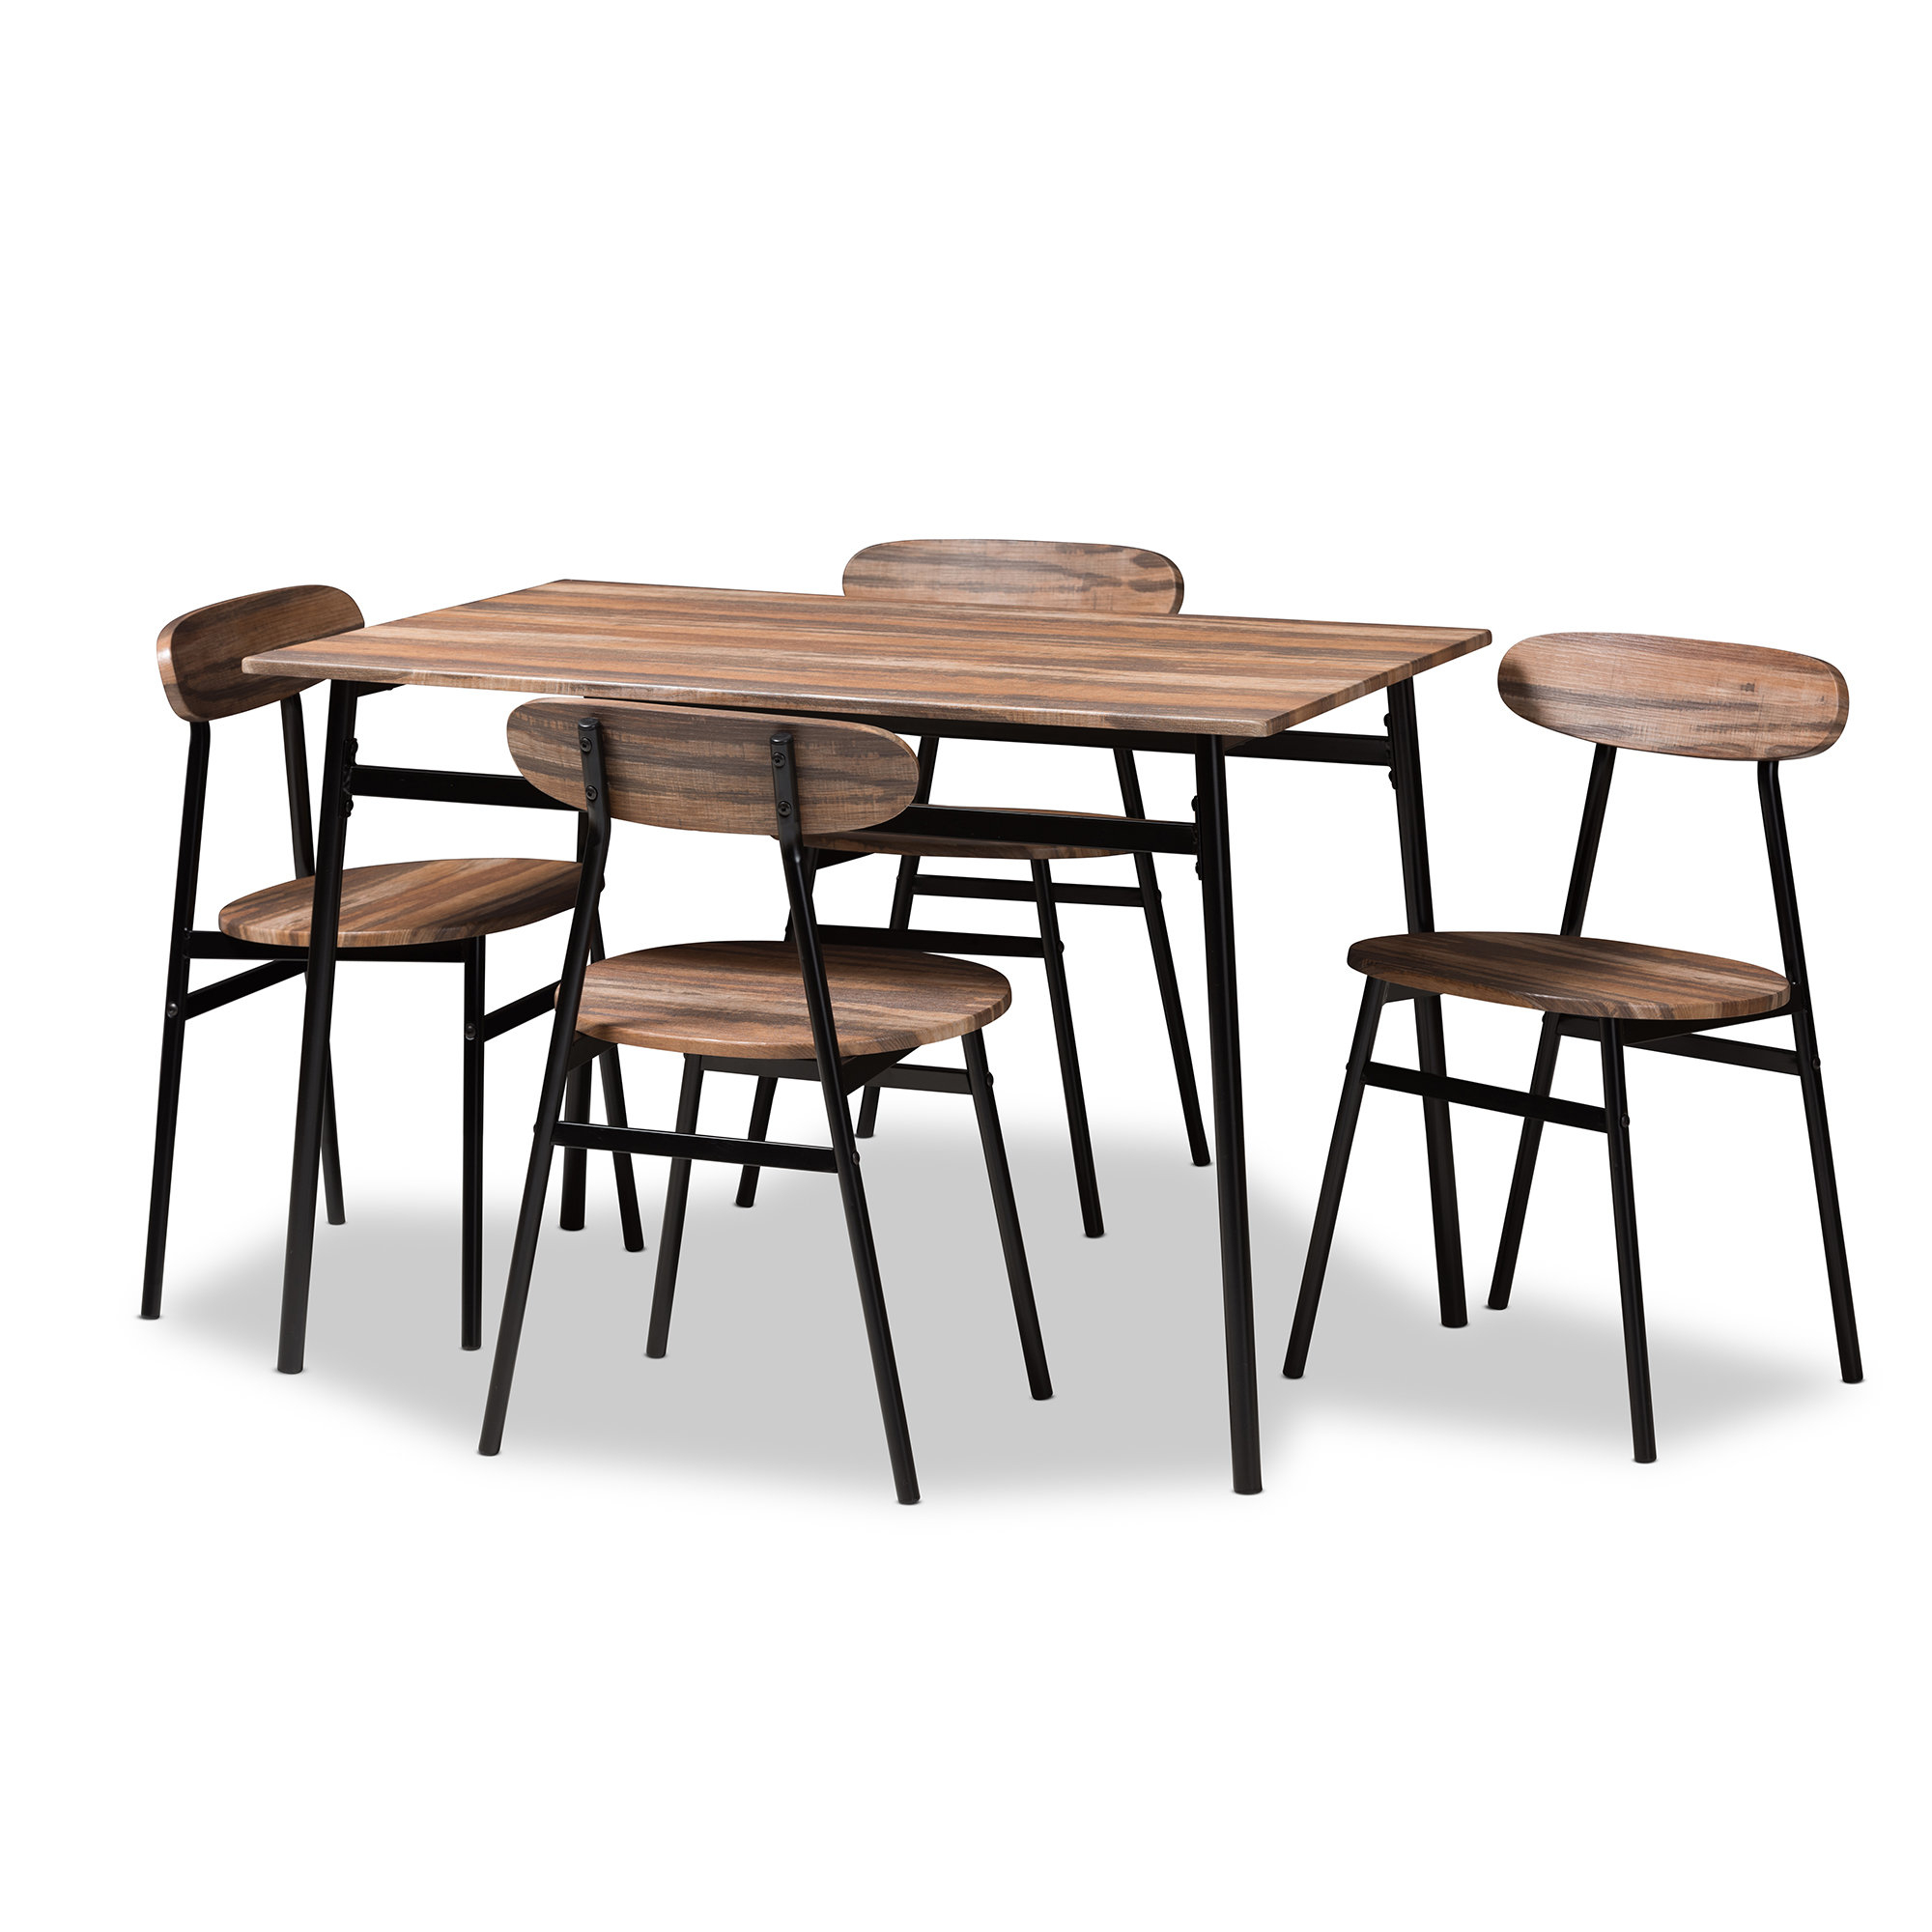 Telauges 5 Piece Dining Set Within Most Recent Wiggs 5 Piece Dining Sets (View 4 of 20)